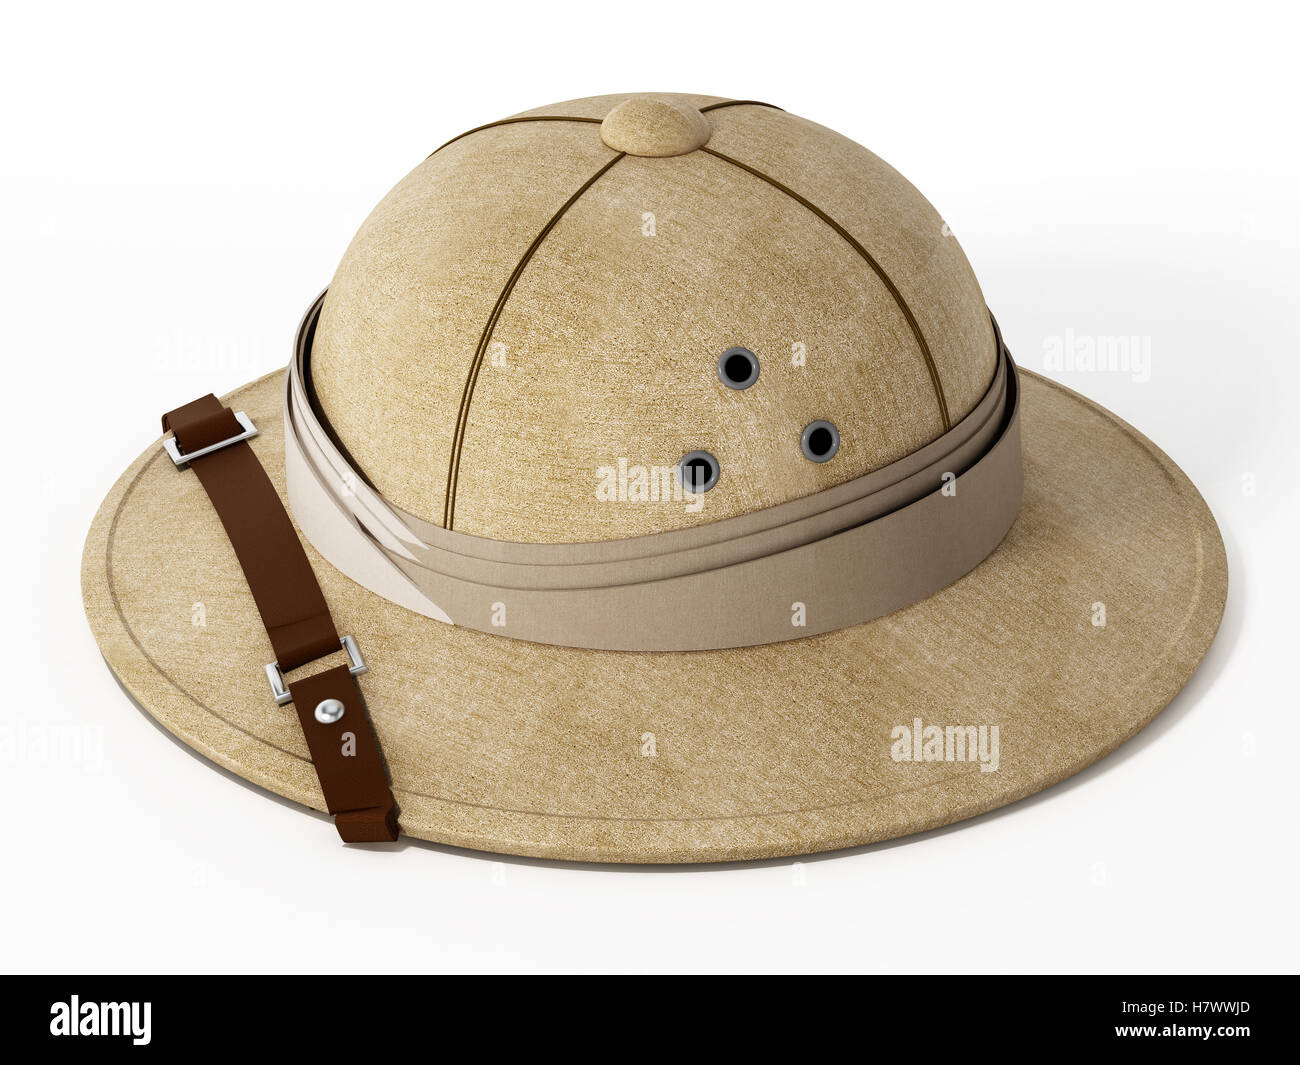 67bea9c4fbf9a Vintage explorer hat isolated on white background. 3D illustration ...